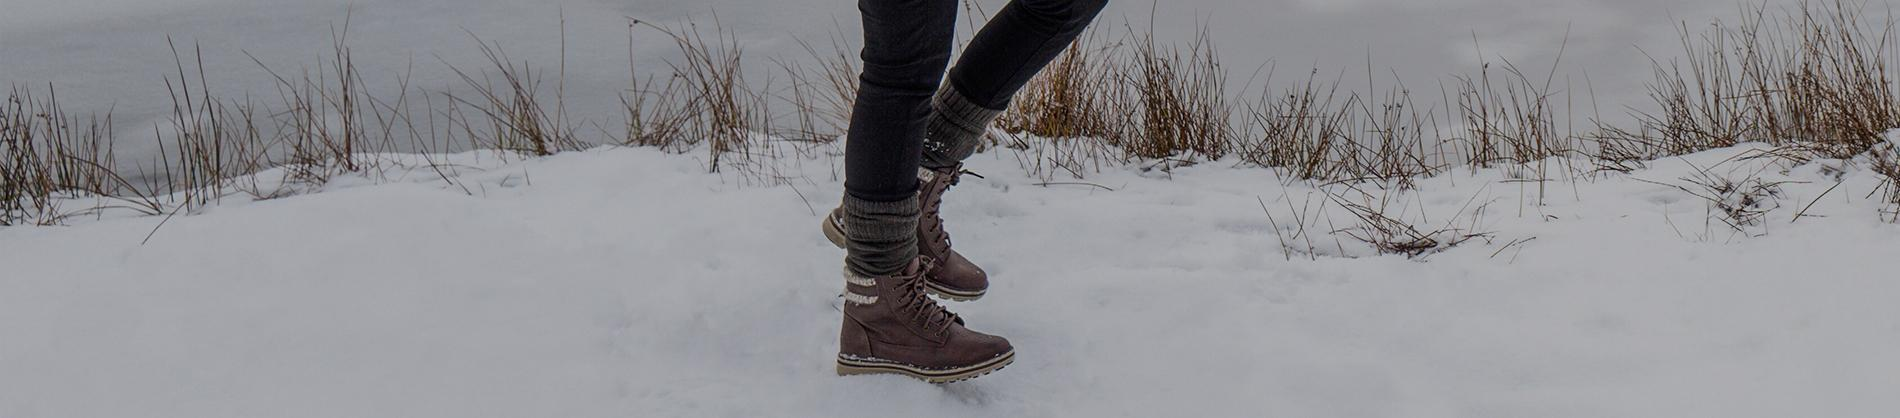 Girl walking in boots through snow